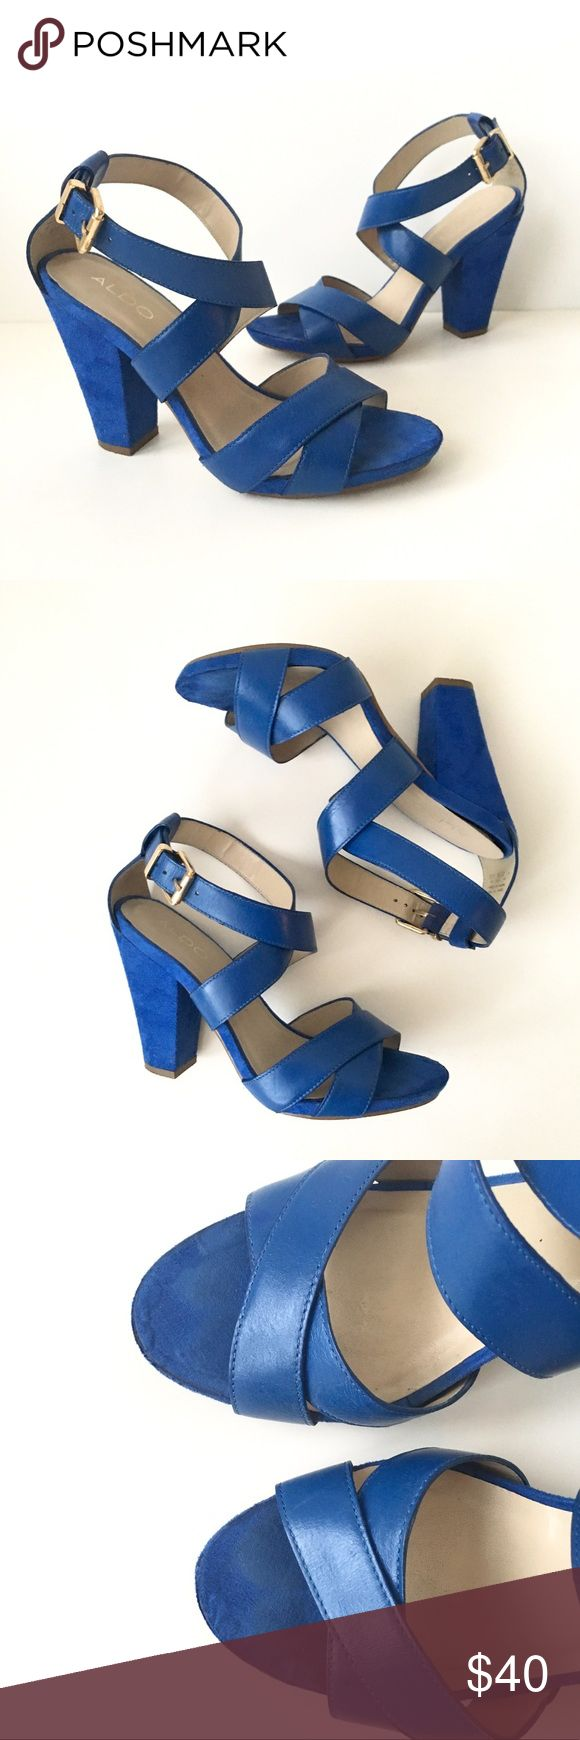 """Aldo Blue Leather & Suede Heeled Sandal In good used condition. Perfect to add a pop of color to your outfit. Spring/summer shoe. Comfortable chunky block heel. Worn approx 10 times. Some wear around toe area and wrinkling where manufacturer glued fabric. Please inspect all photos carefully for signs of wear! As far as I remember, they are real leather straps.   Heel height: approx 4""""  Fit TTS. I am normally 6.5/7 and these fit perfectly.  Open to offers or bundle for a private discount…"""